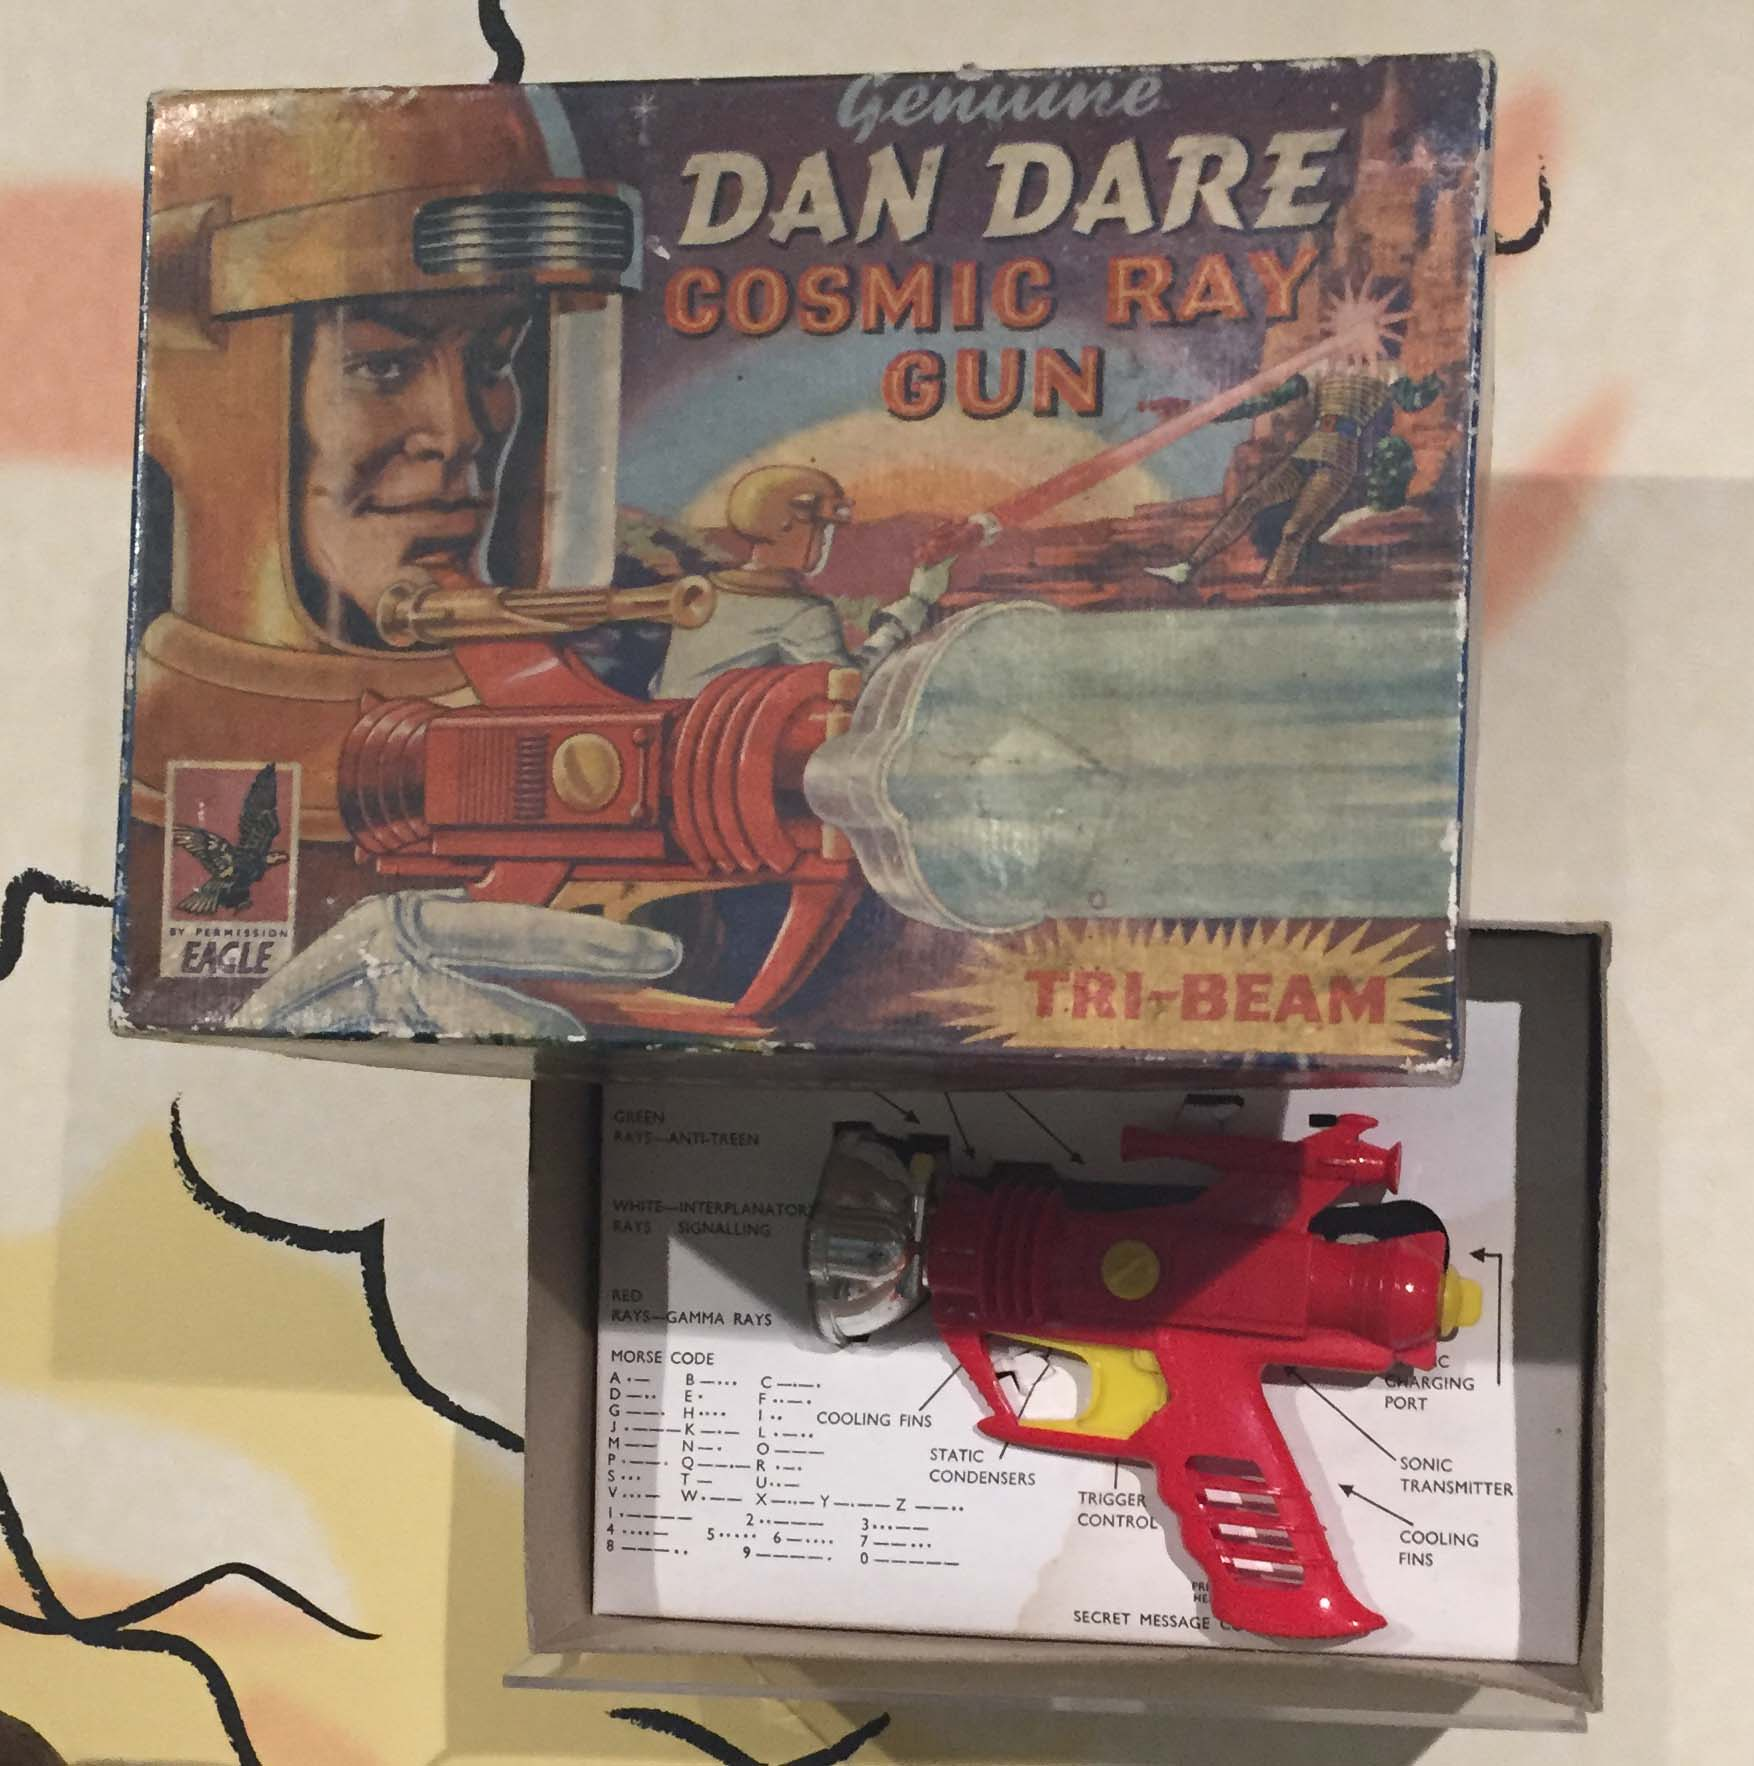 a photo of a Dan Dare box and toy gun